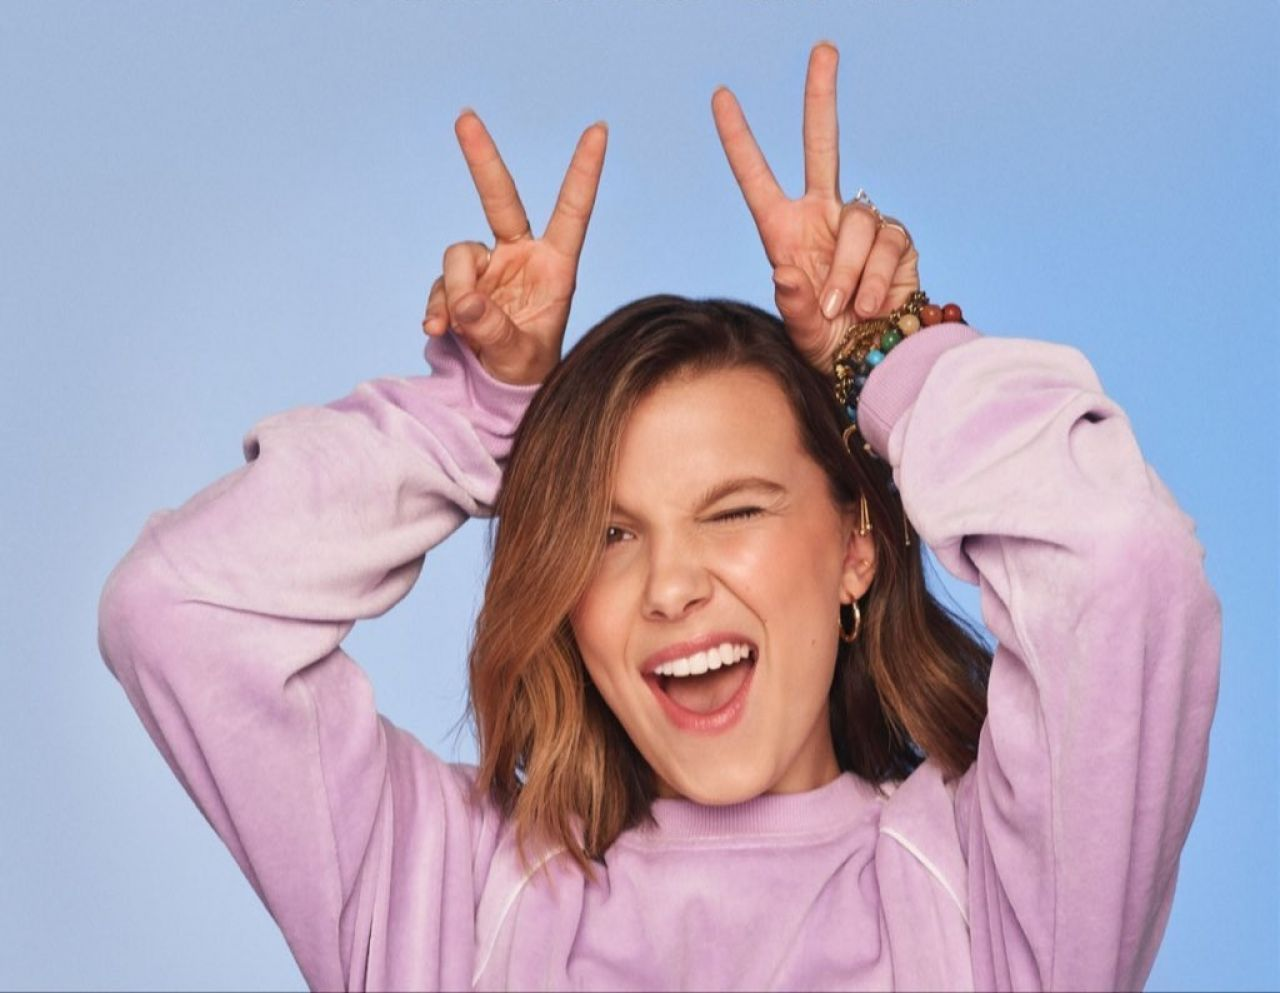 Millie Bobby Brown Clean Beauty Products For Teens 08 20 2019 Millie Bobby Brown Bobby Brown Stranger Things Bobby Brown